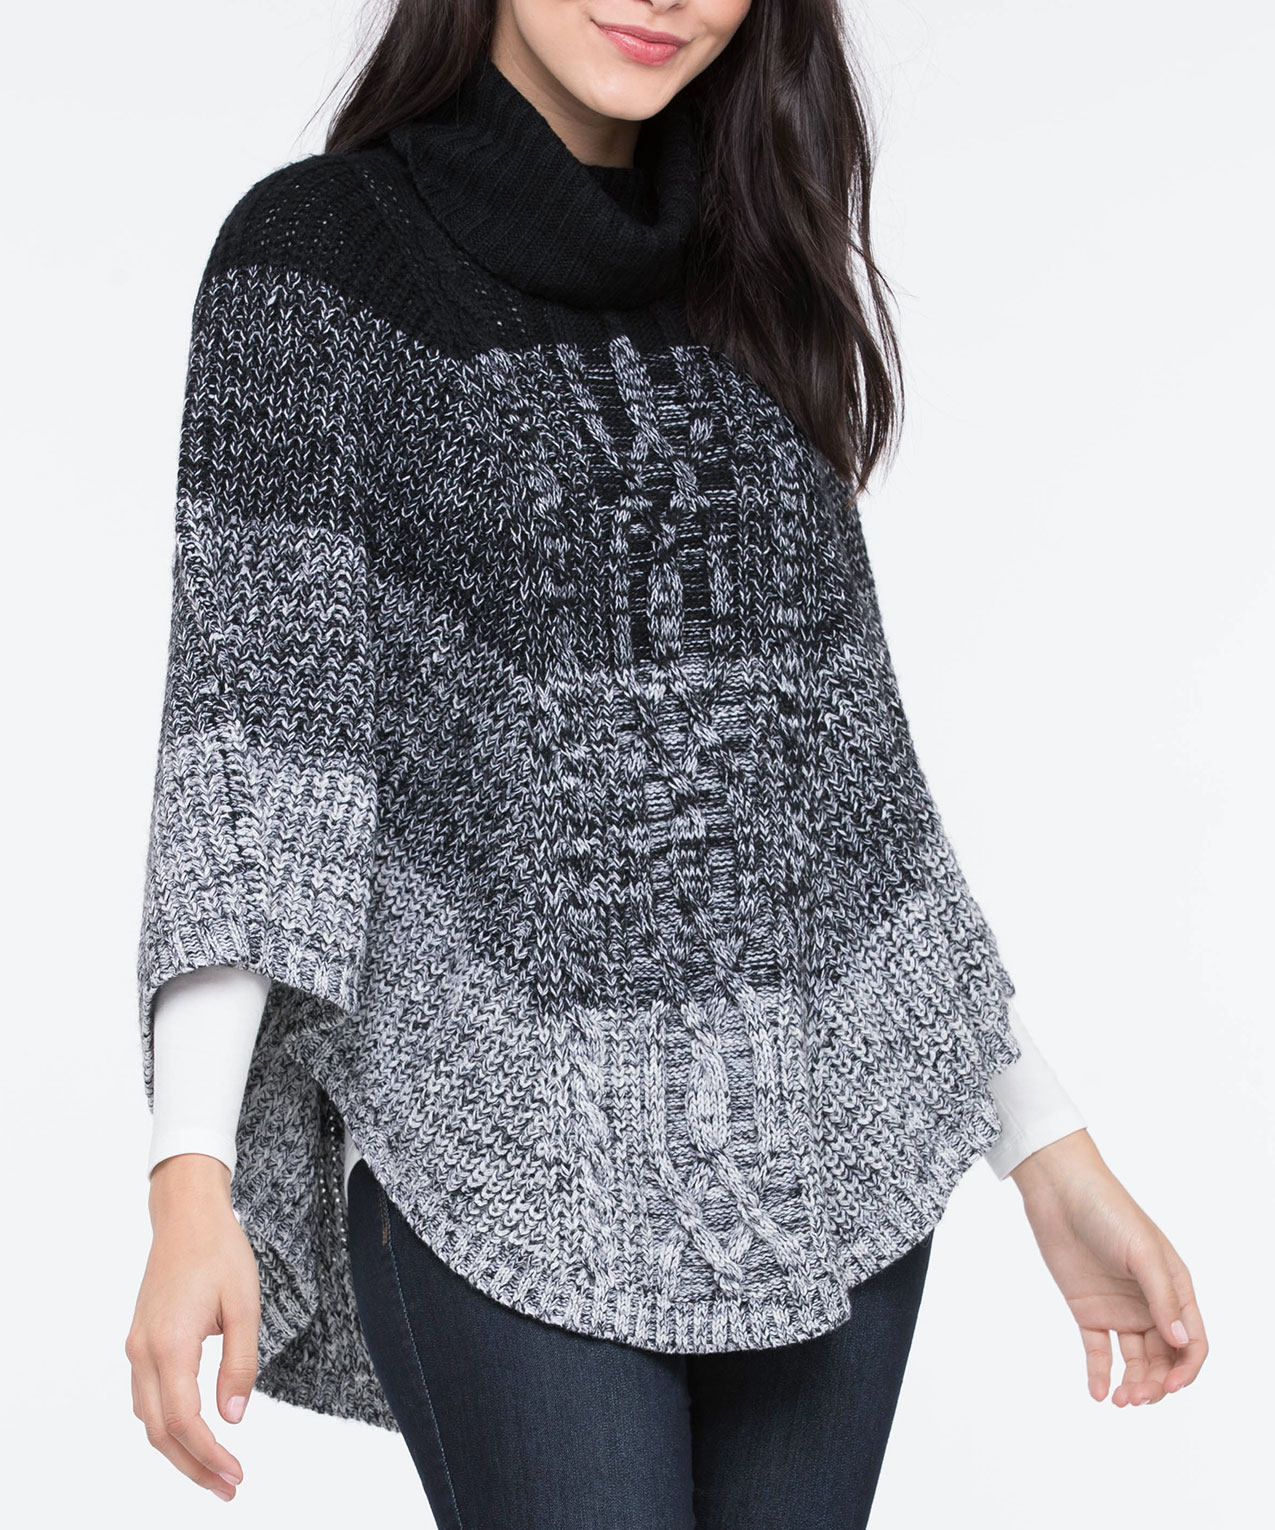 Colour Works Womens Cowl Neck Poncho